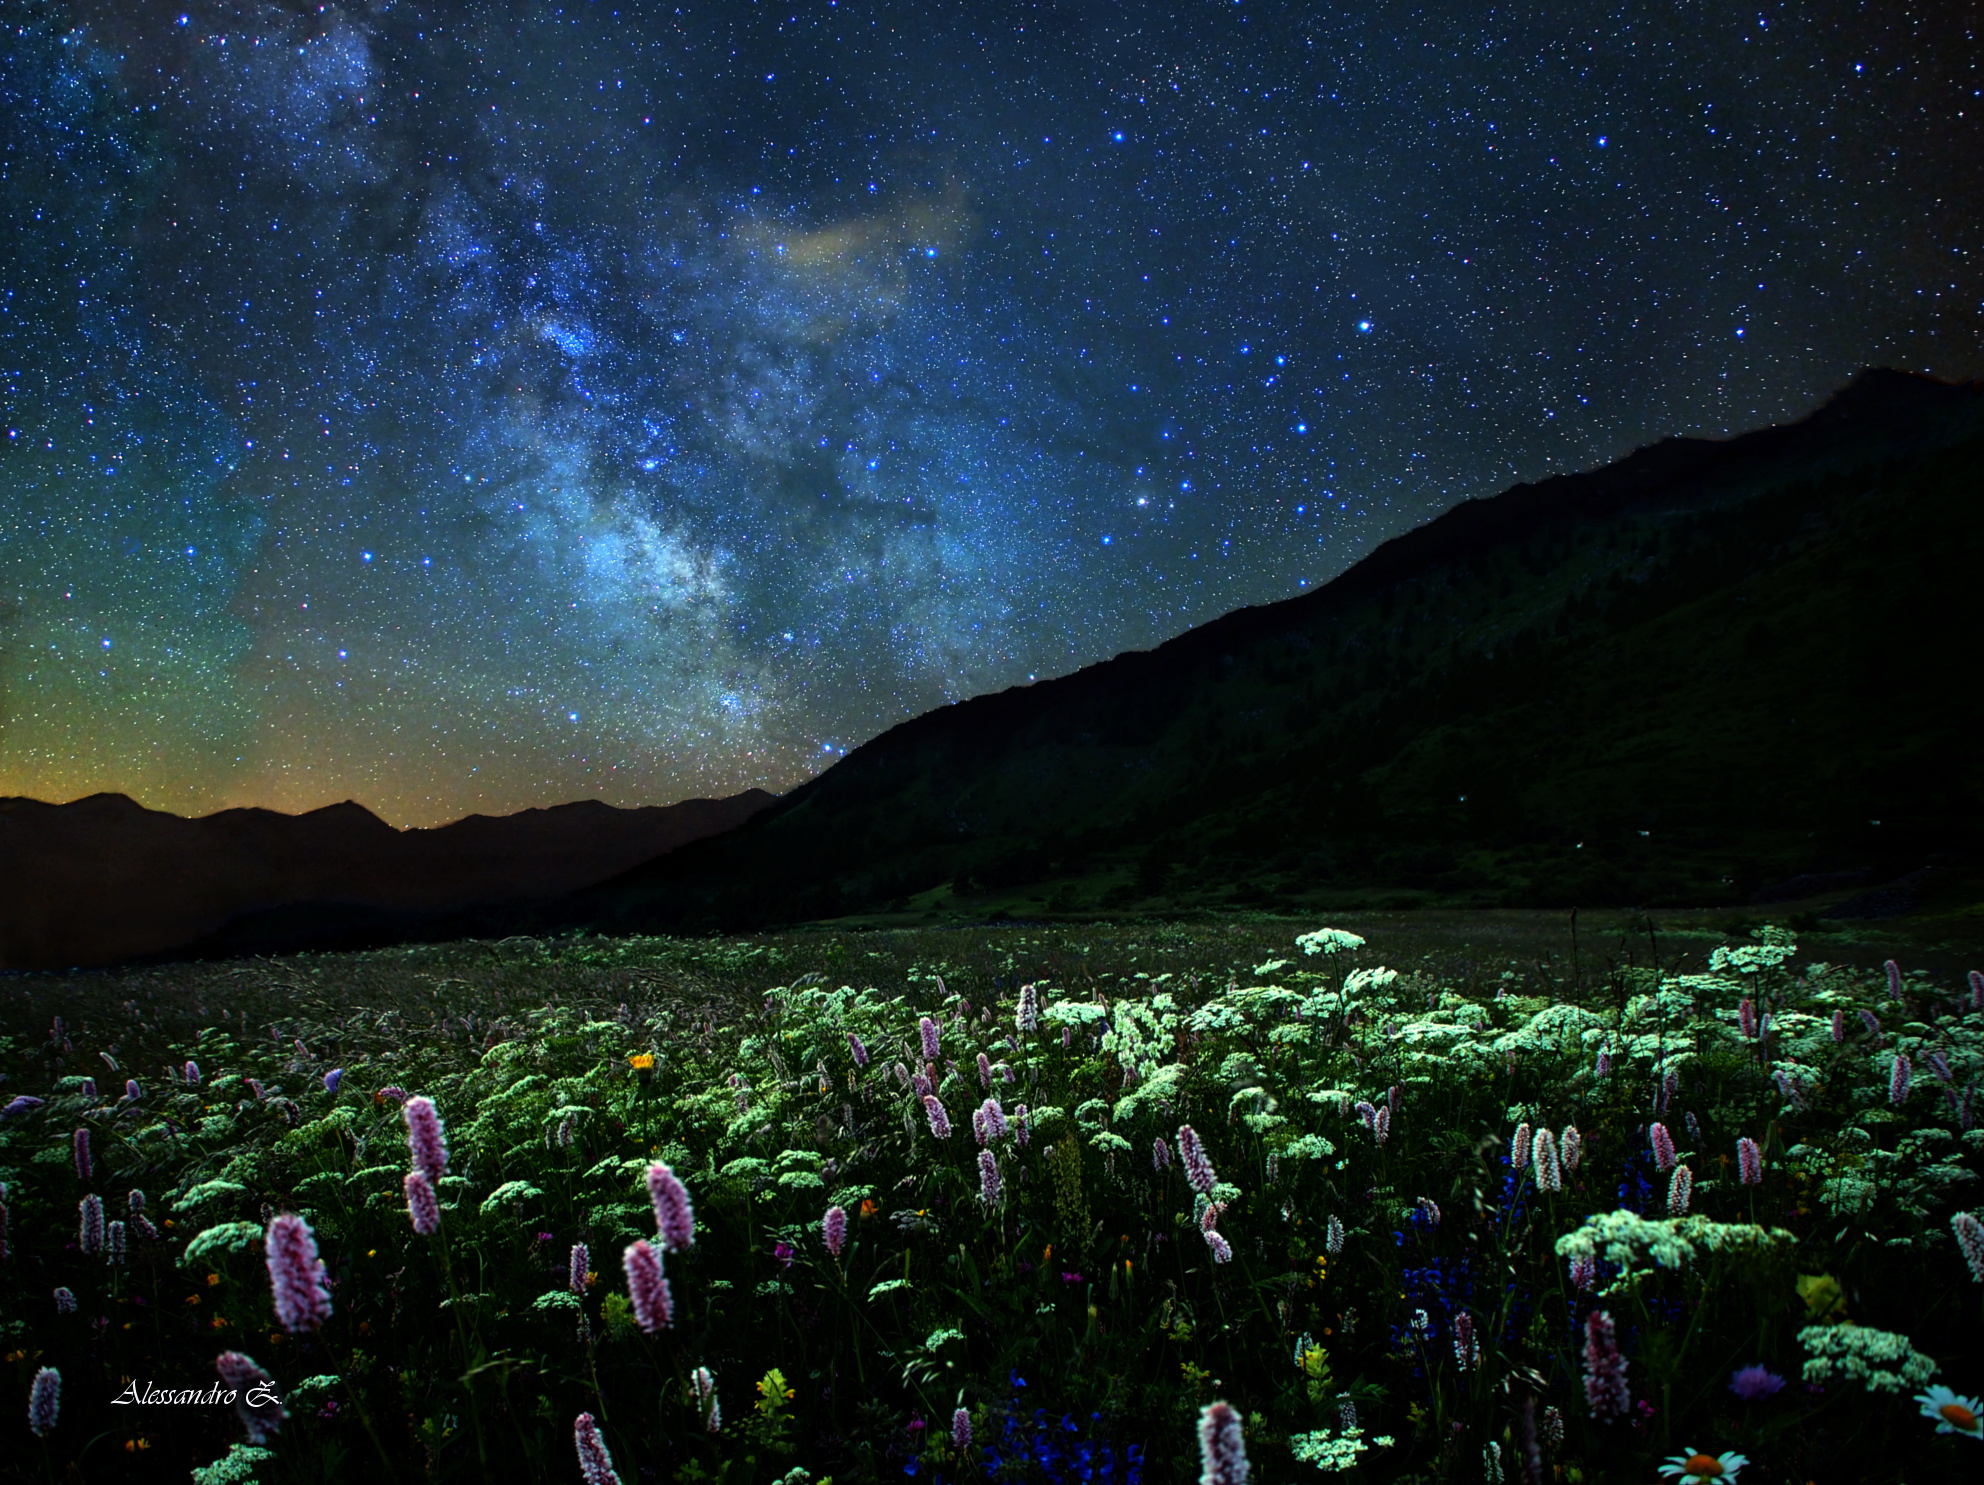 Flowery terrace overlooking the center of the galaxy ......